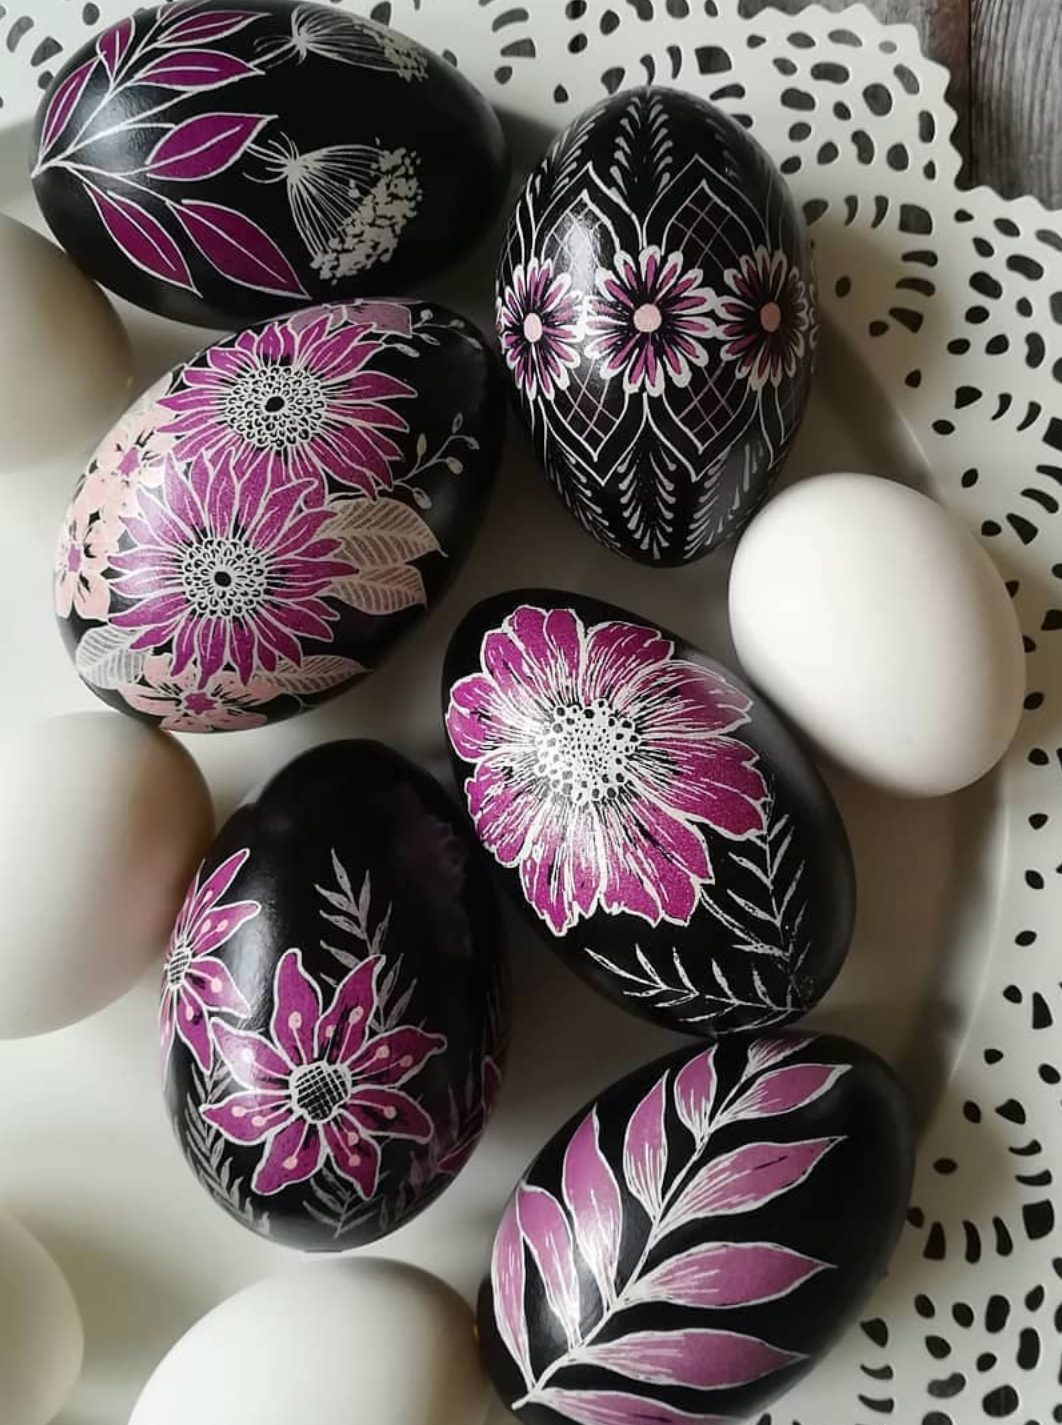 Black and pink Easter egg decorating ideas for adults